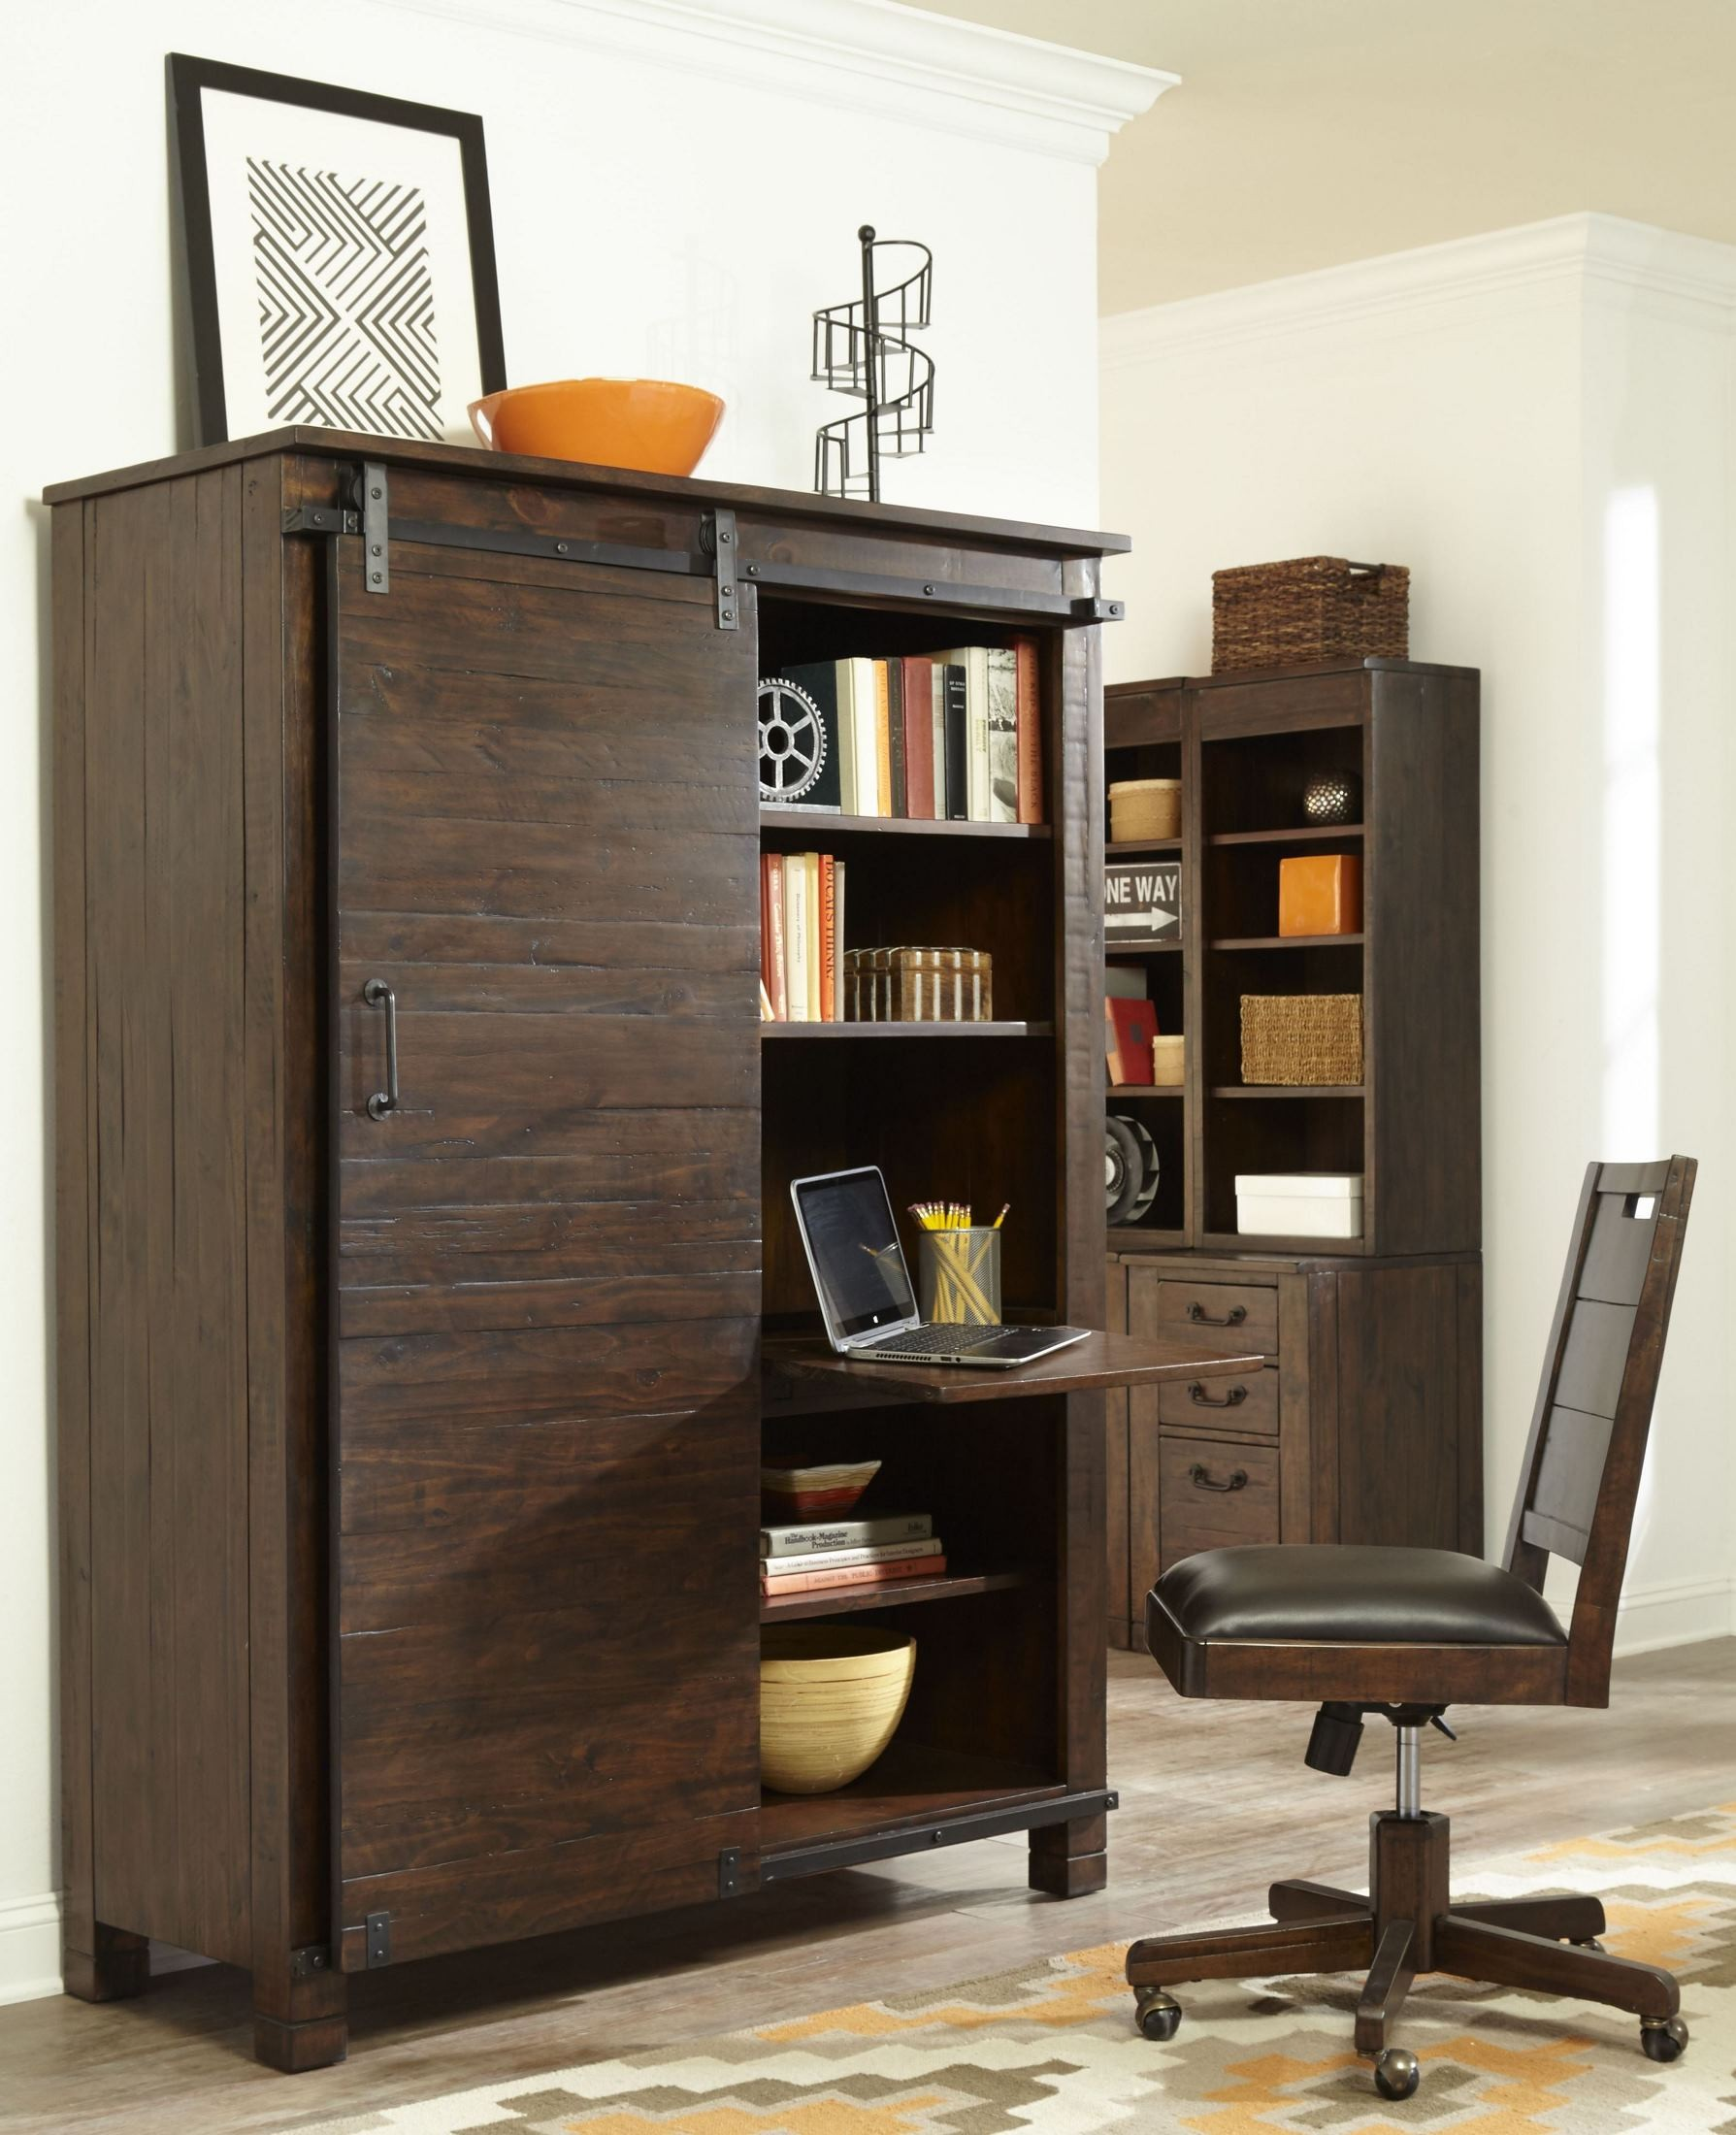 Rustic Home Office Interior Design: Pine Hill Rustic Pine Secretary Home Office Set, H3561-50